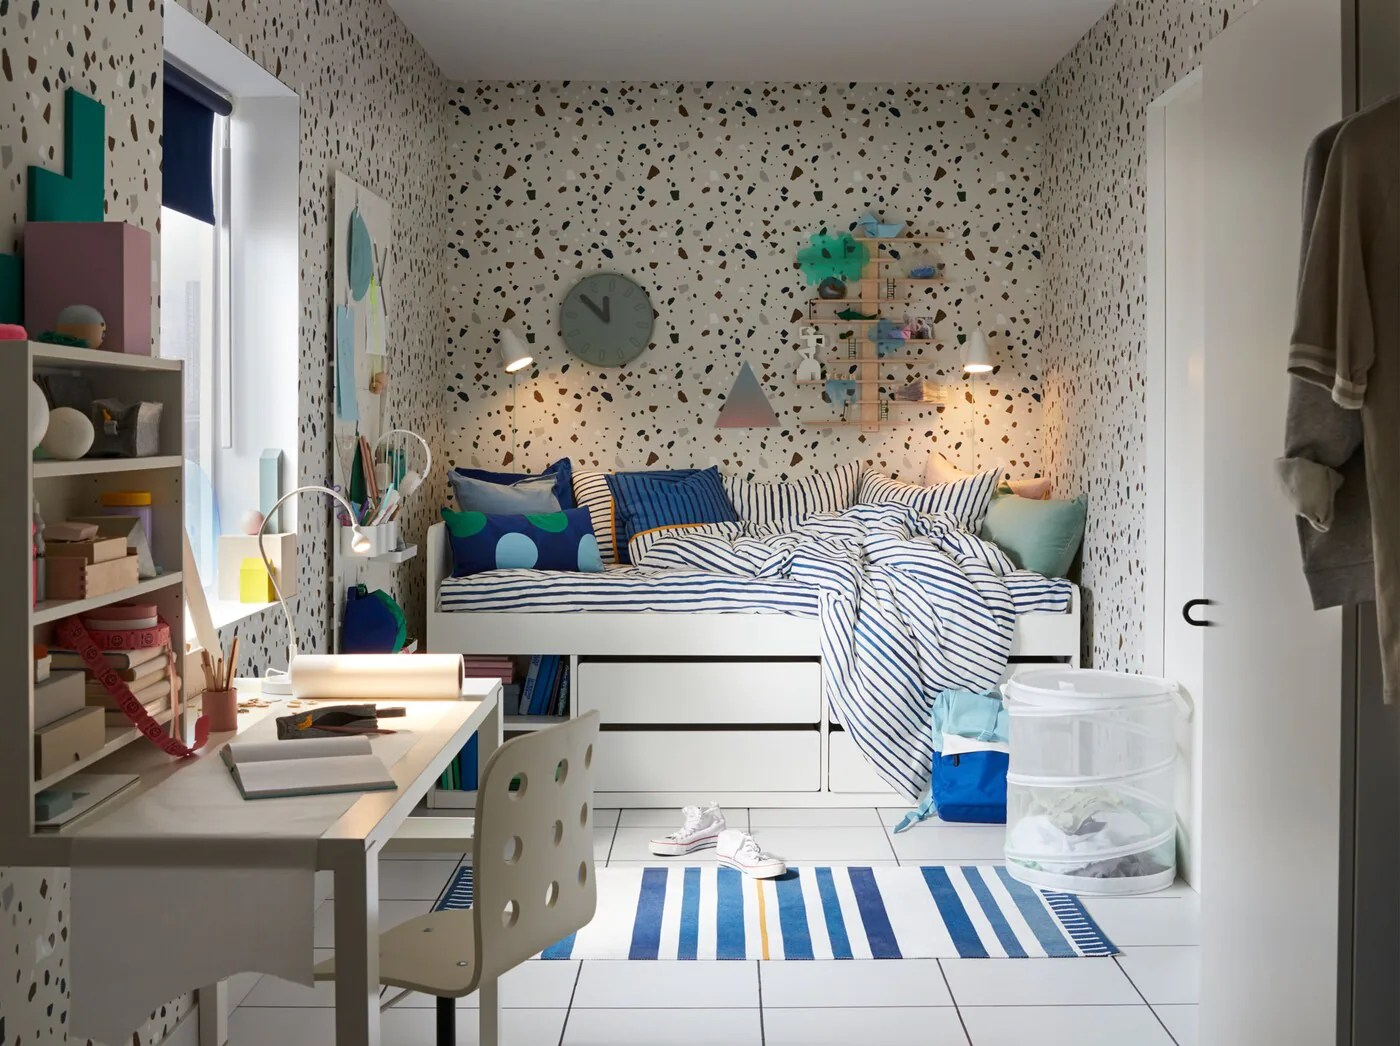 Wandregal Kinderzimmer Blau Cooles Kinderzimmer In Blau Gestalten Ikea